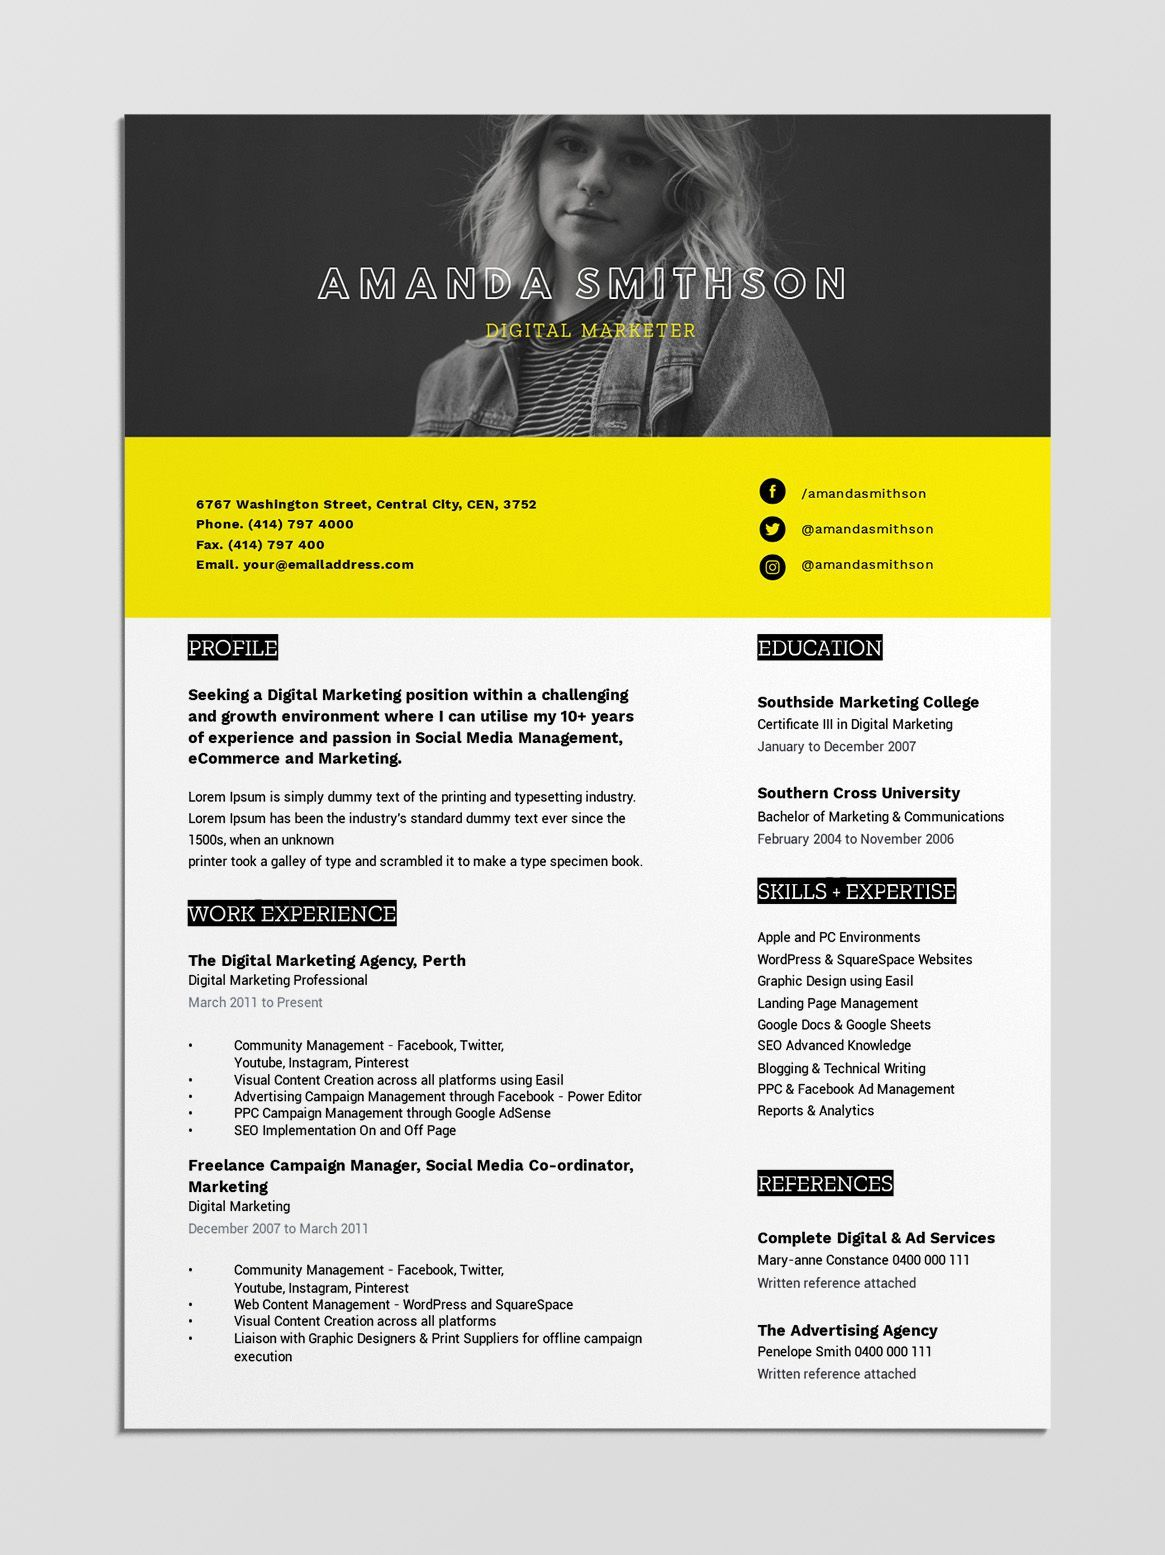 12 Best Free Resume Templates Tips On How To Stand Out Resume Cv Curriculumvitae Buildin Resume Template Free Best Free Resume Templates Resume Templates